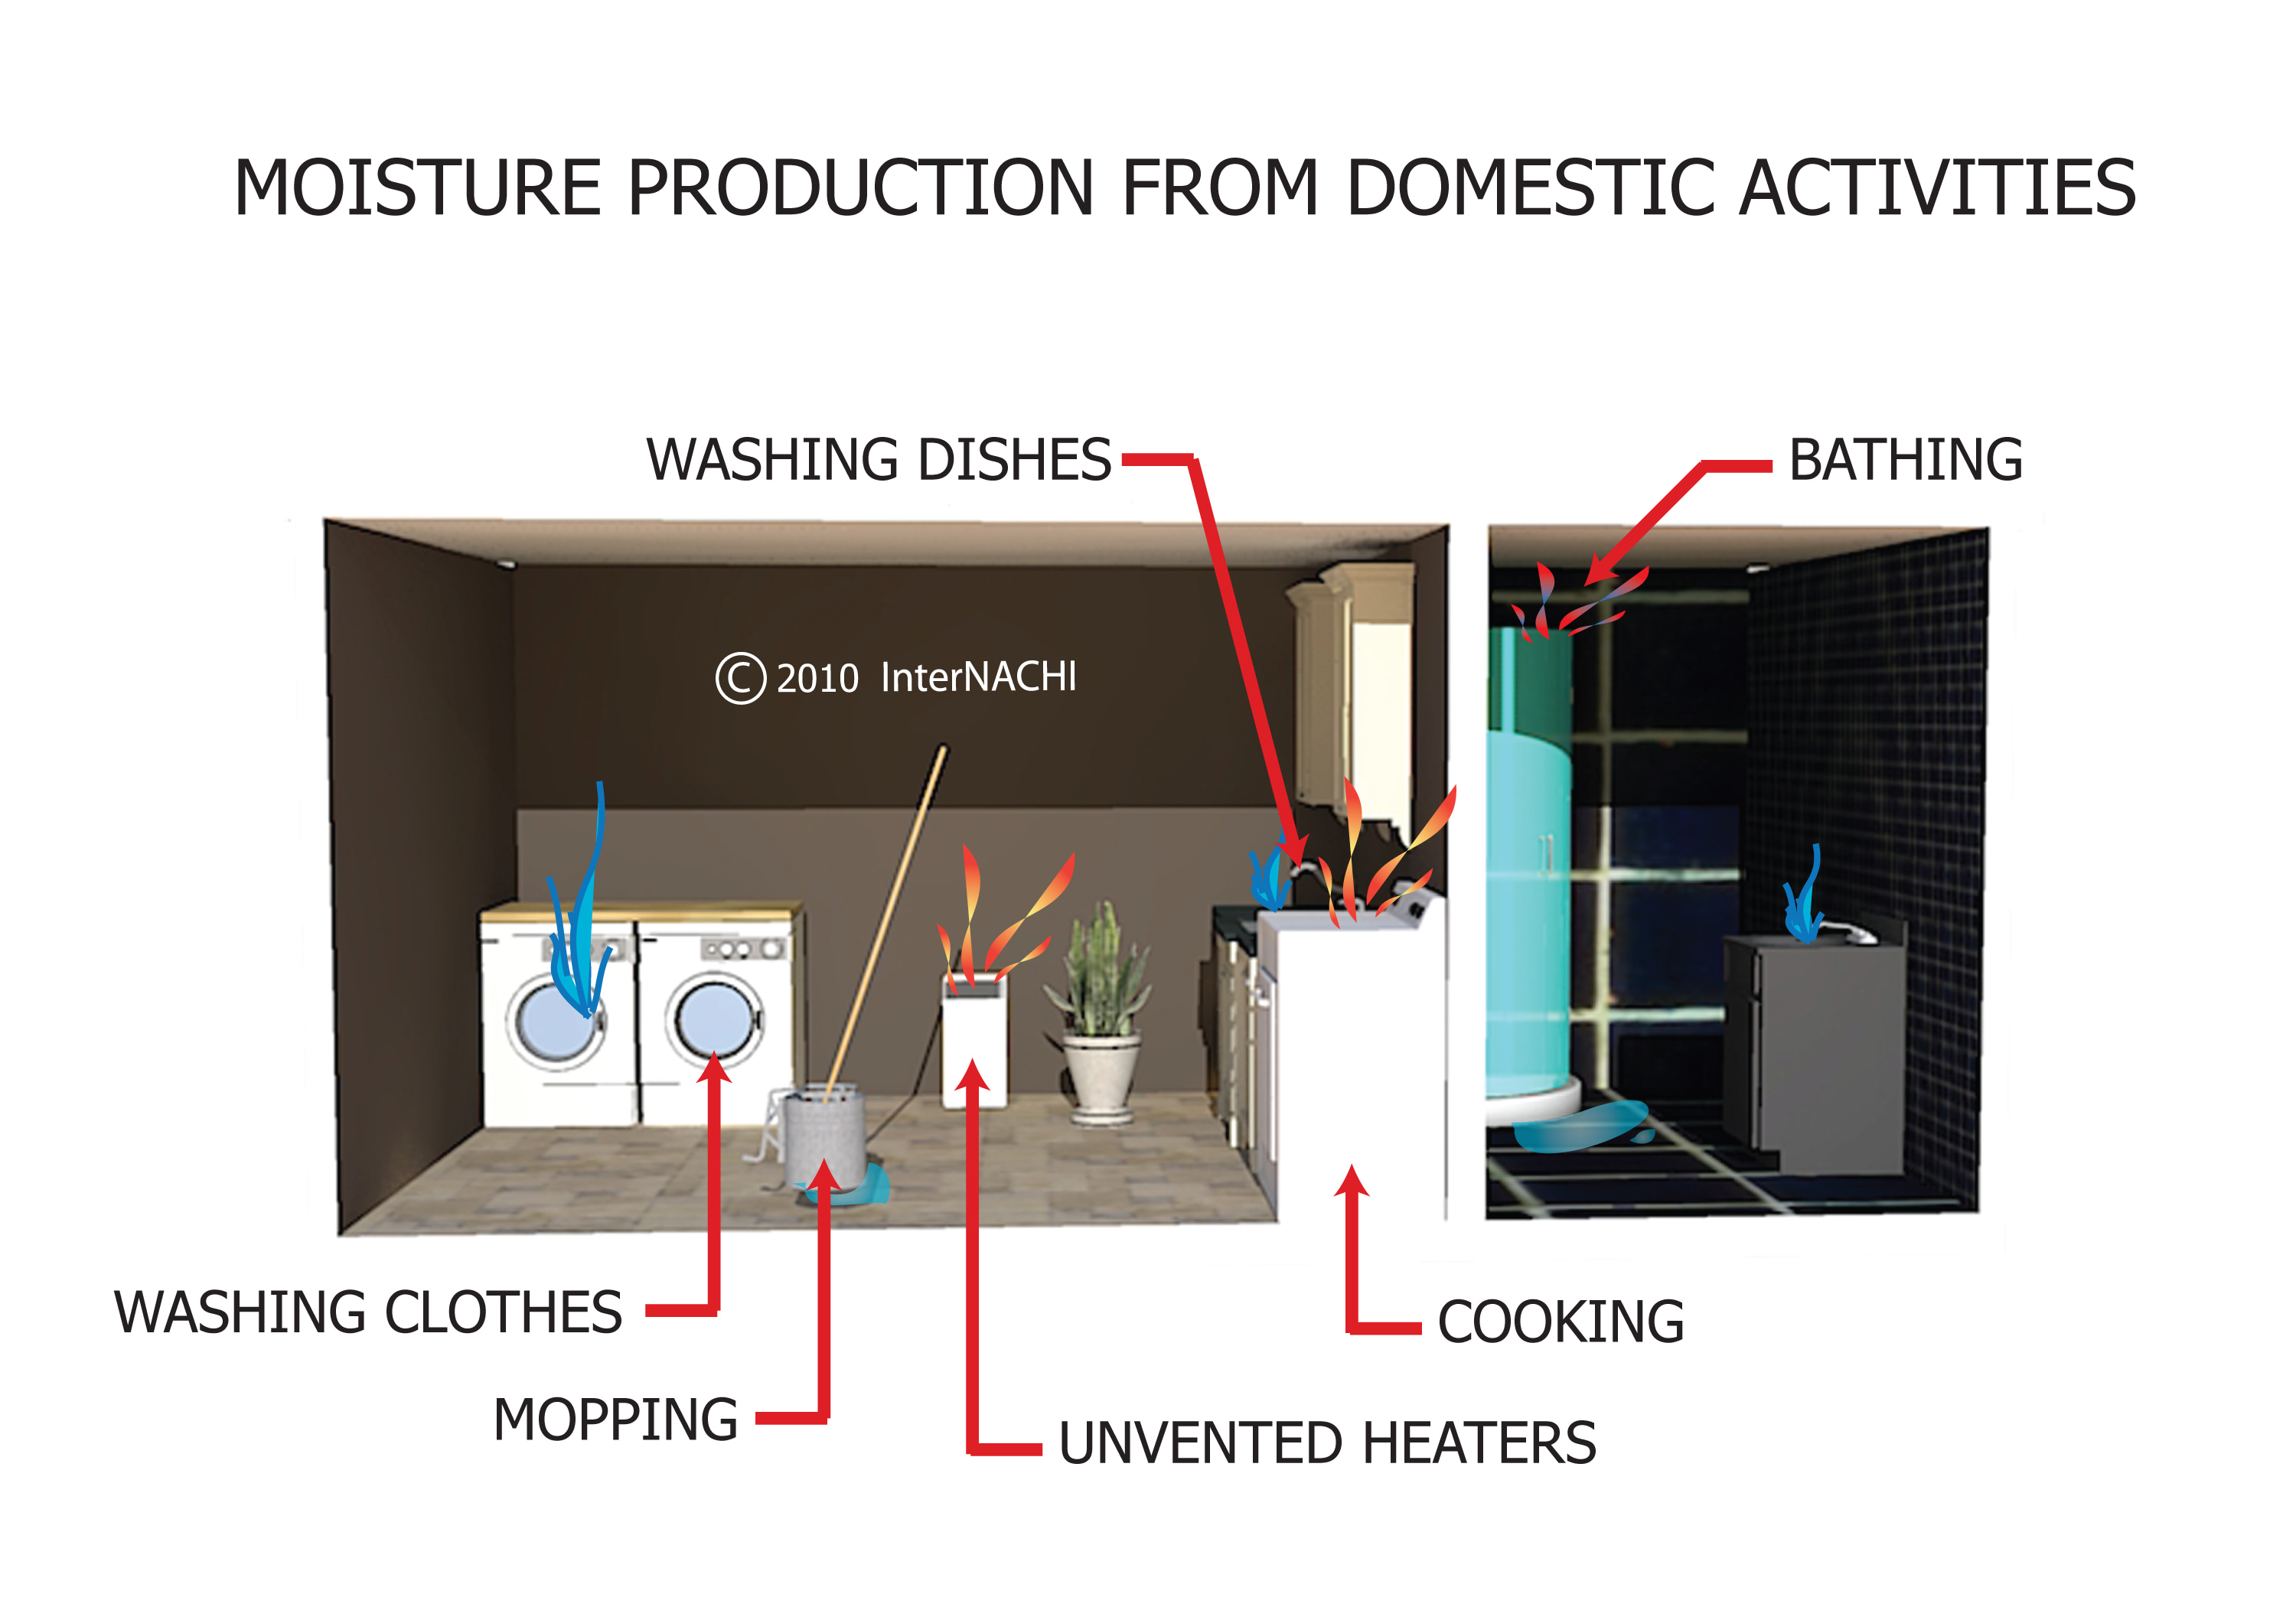 Moisture production from domestic activities.